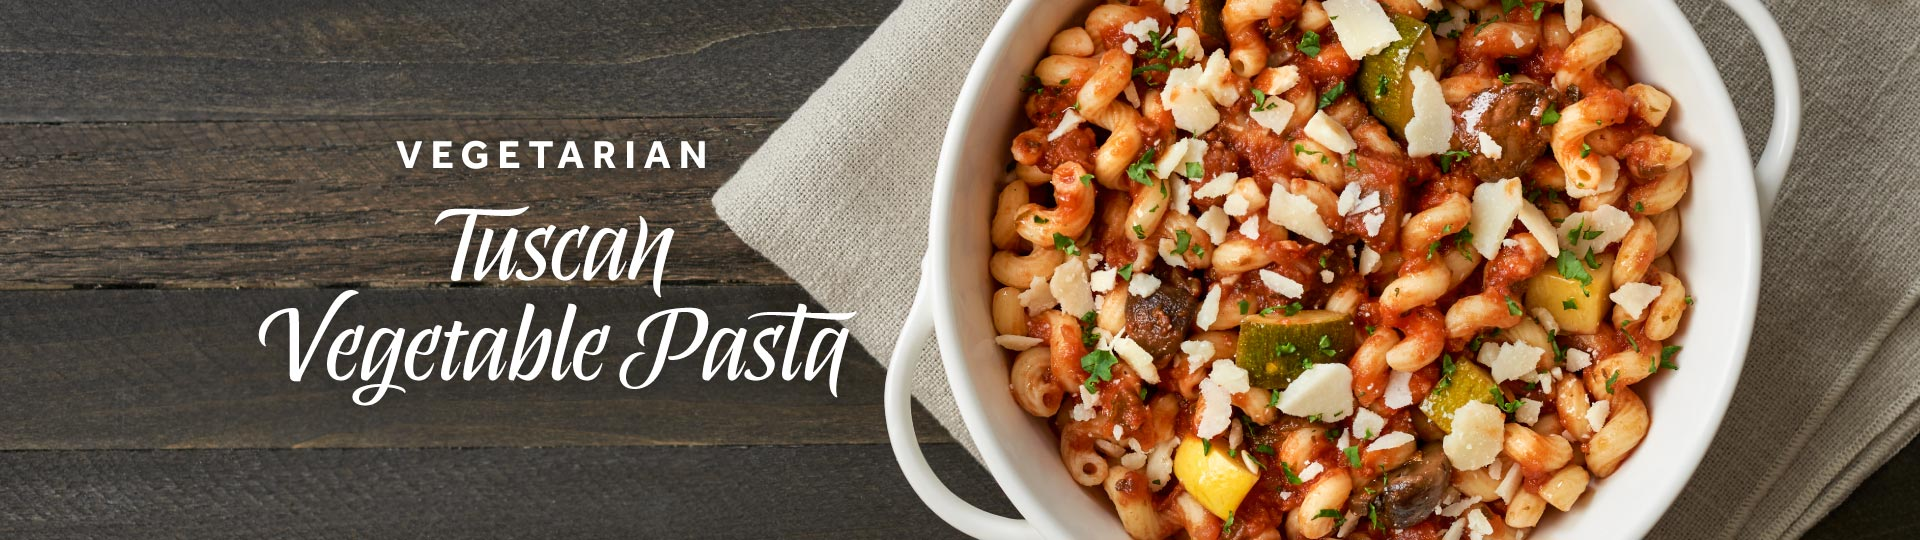 Vegetarian: Tuscan Vegetable Pasta